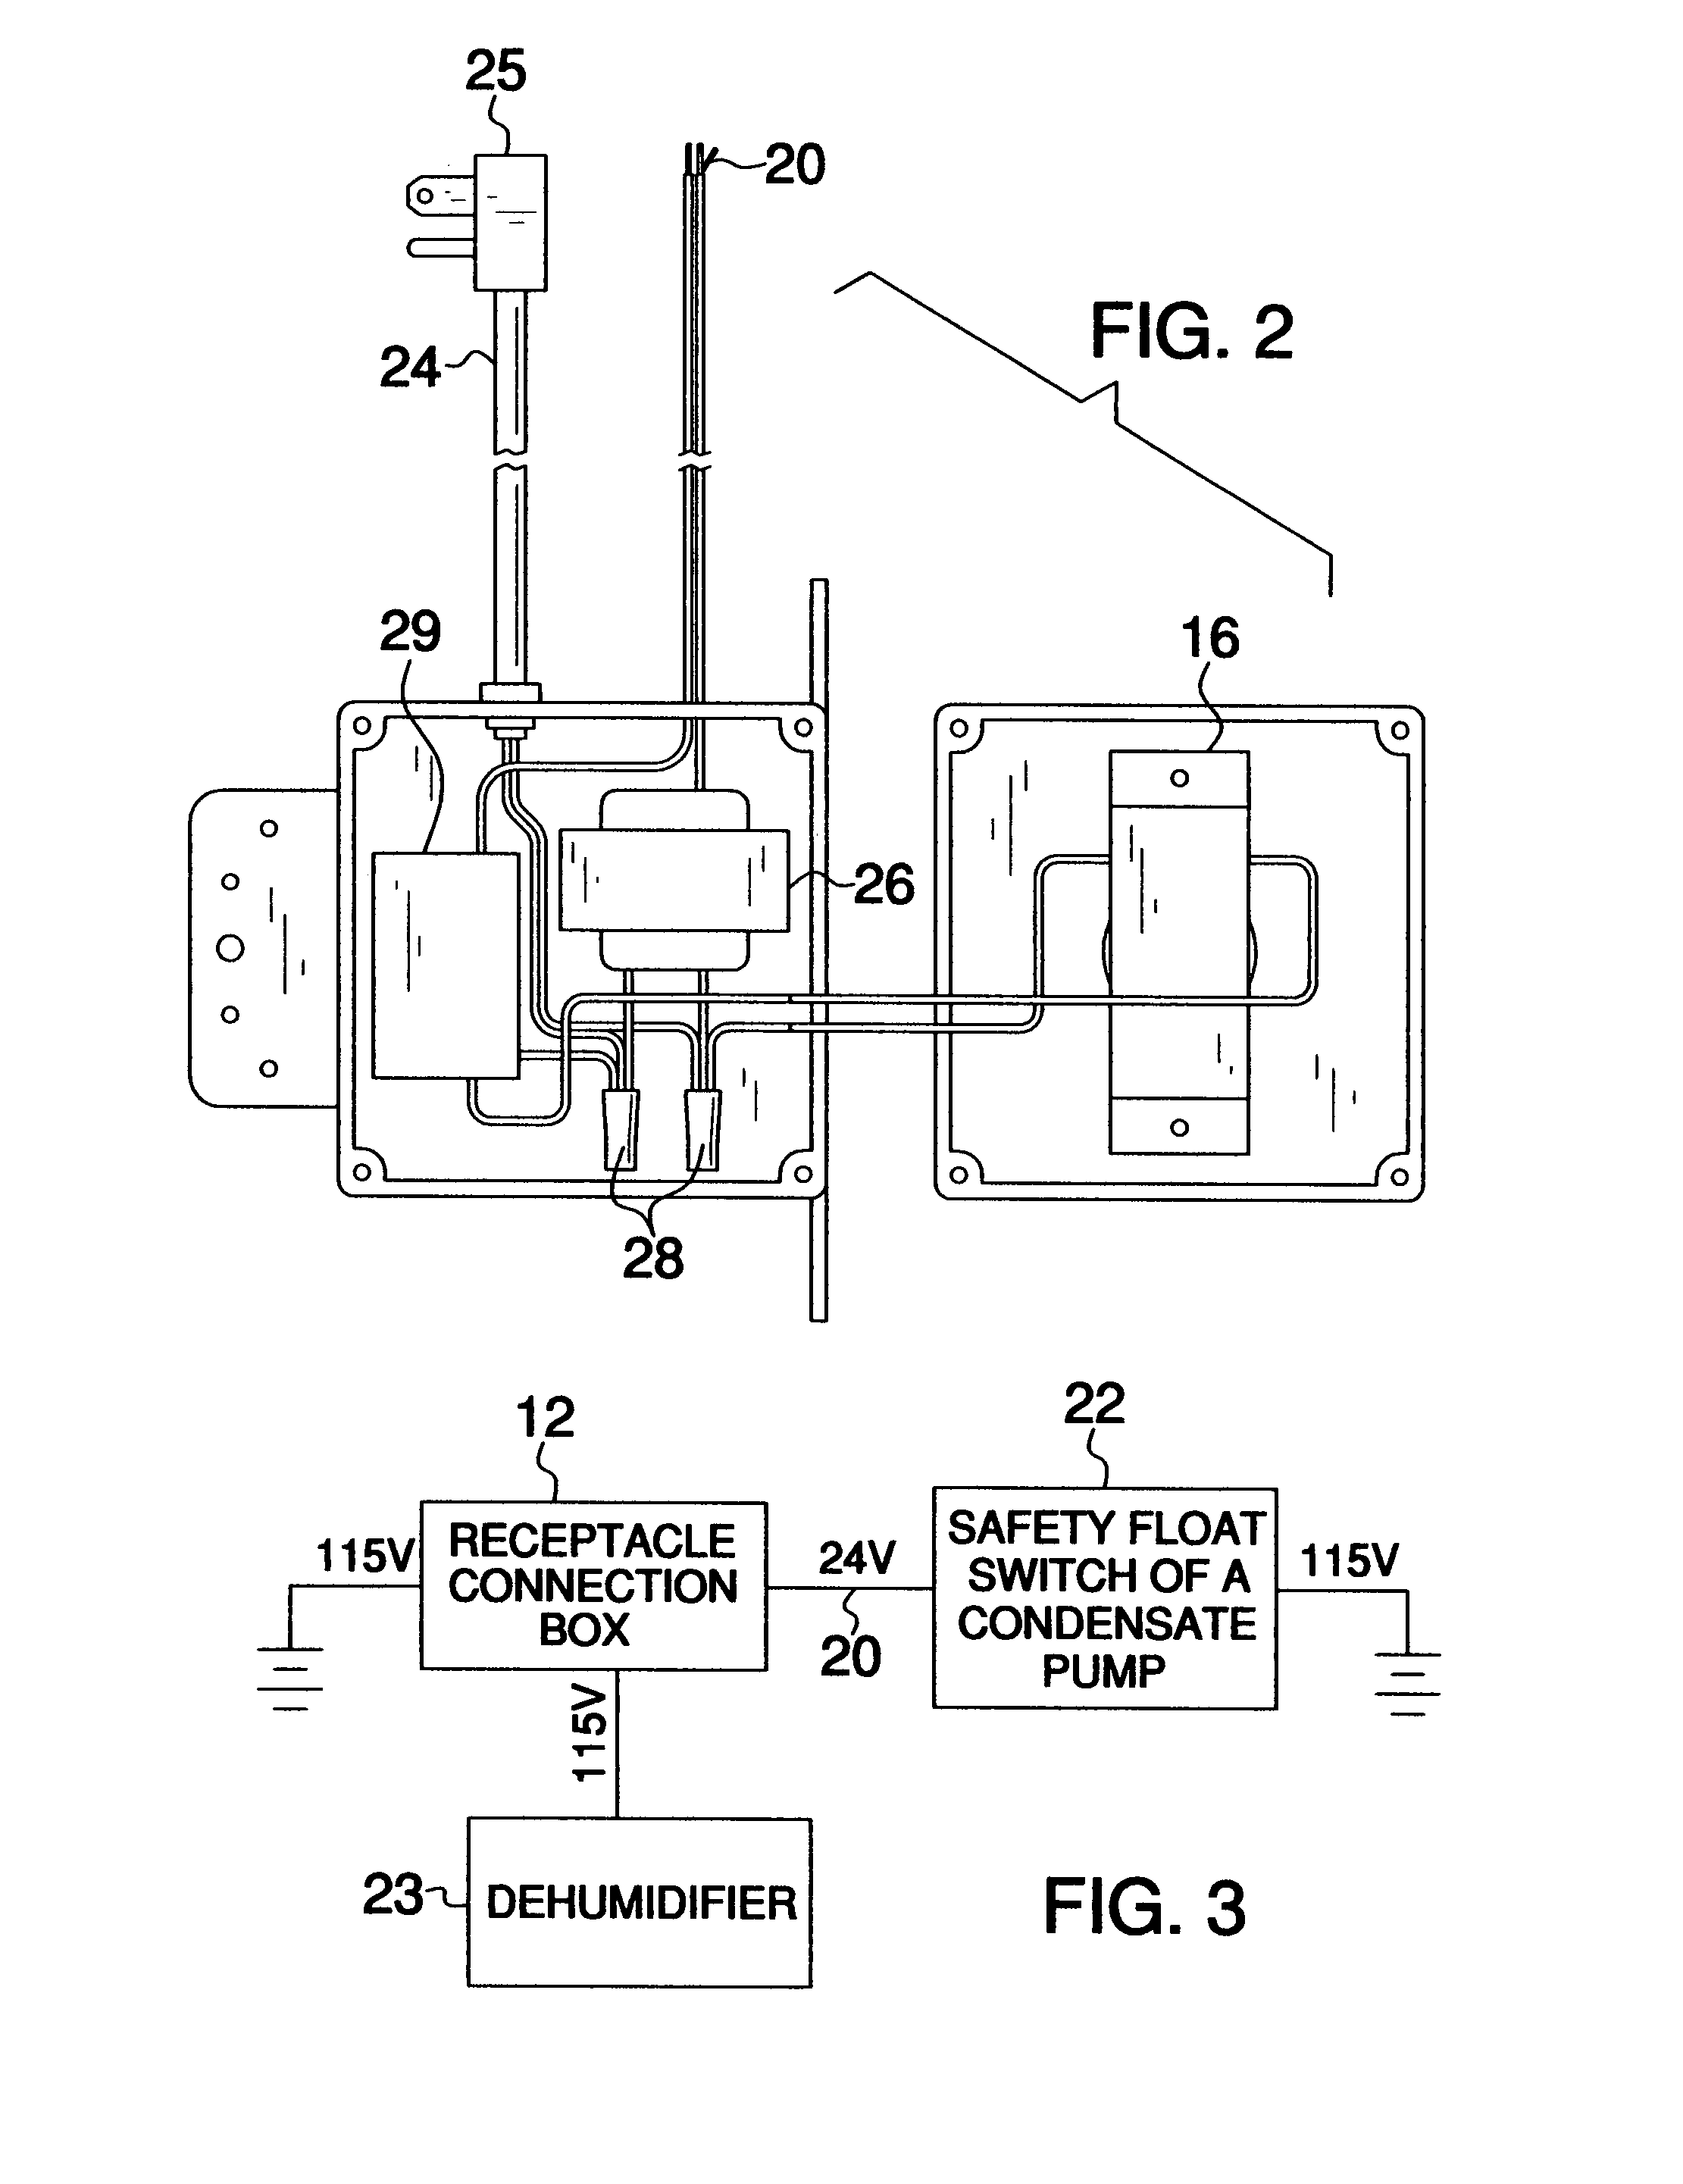 Wiring Condensate Pump And Tank Condensate Pump Float